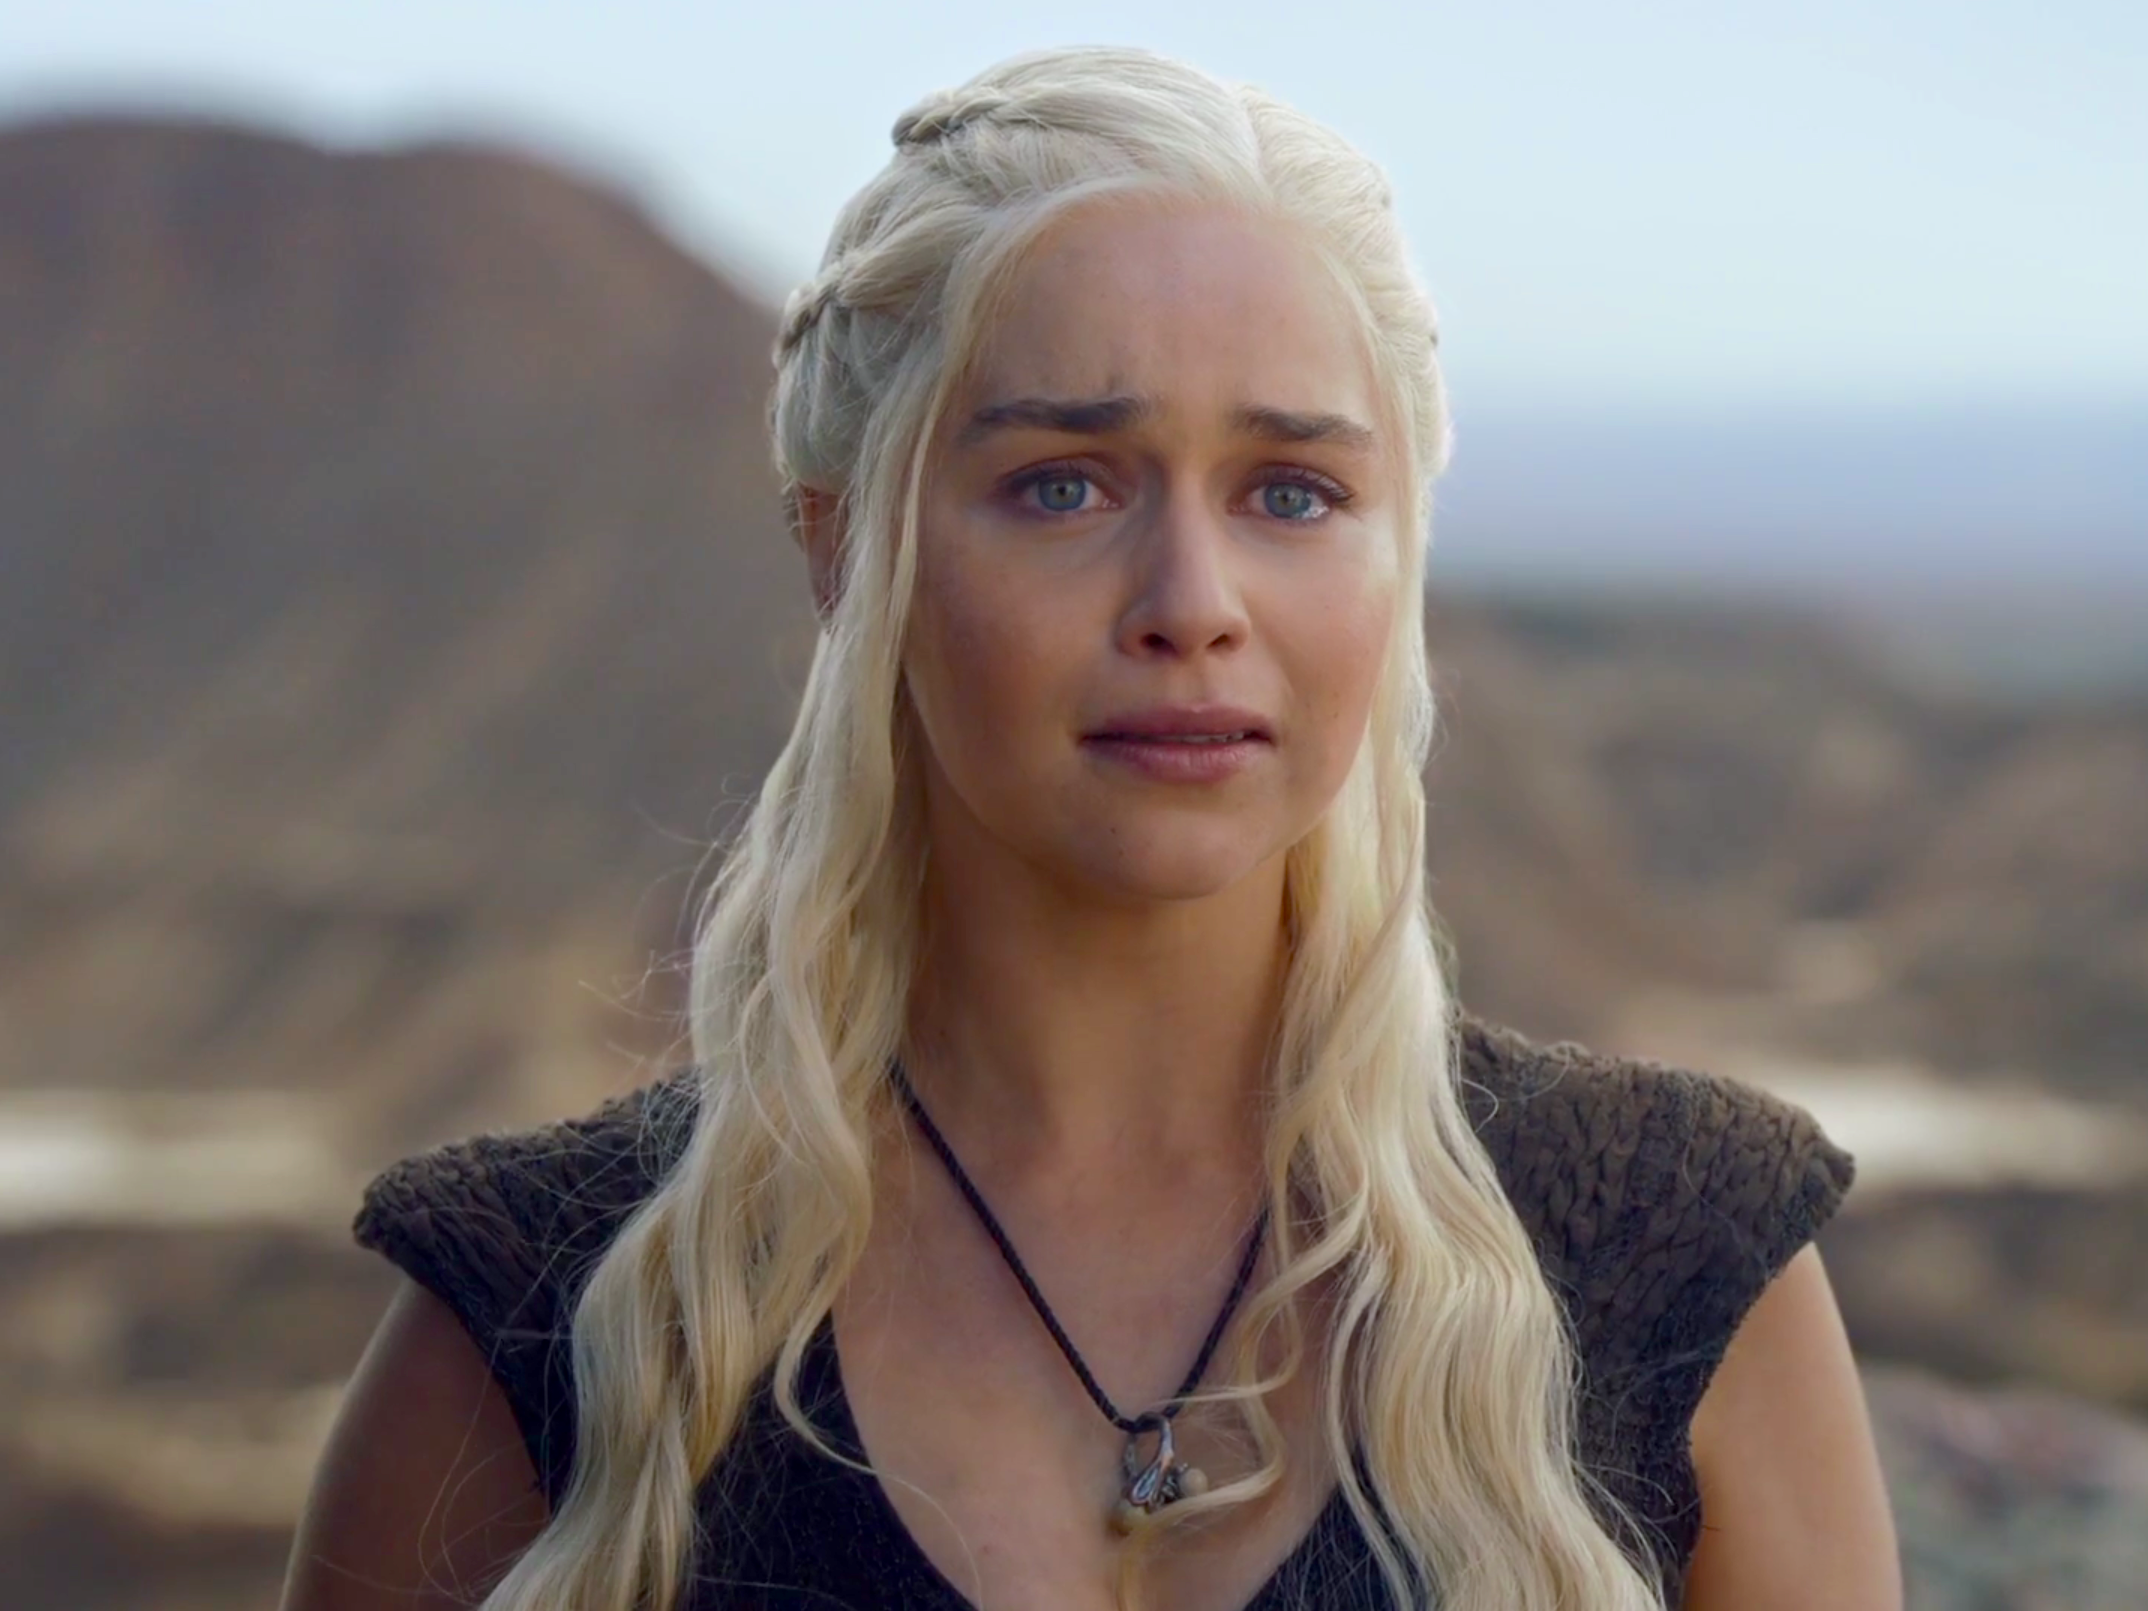 HBO Just Dropped Devastating News For Game Of Thrones Fans daenerys targaryen crying game of thrones